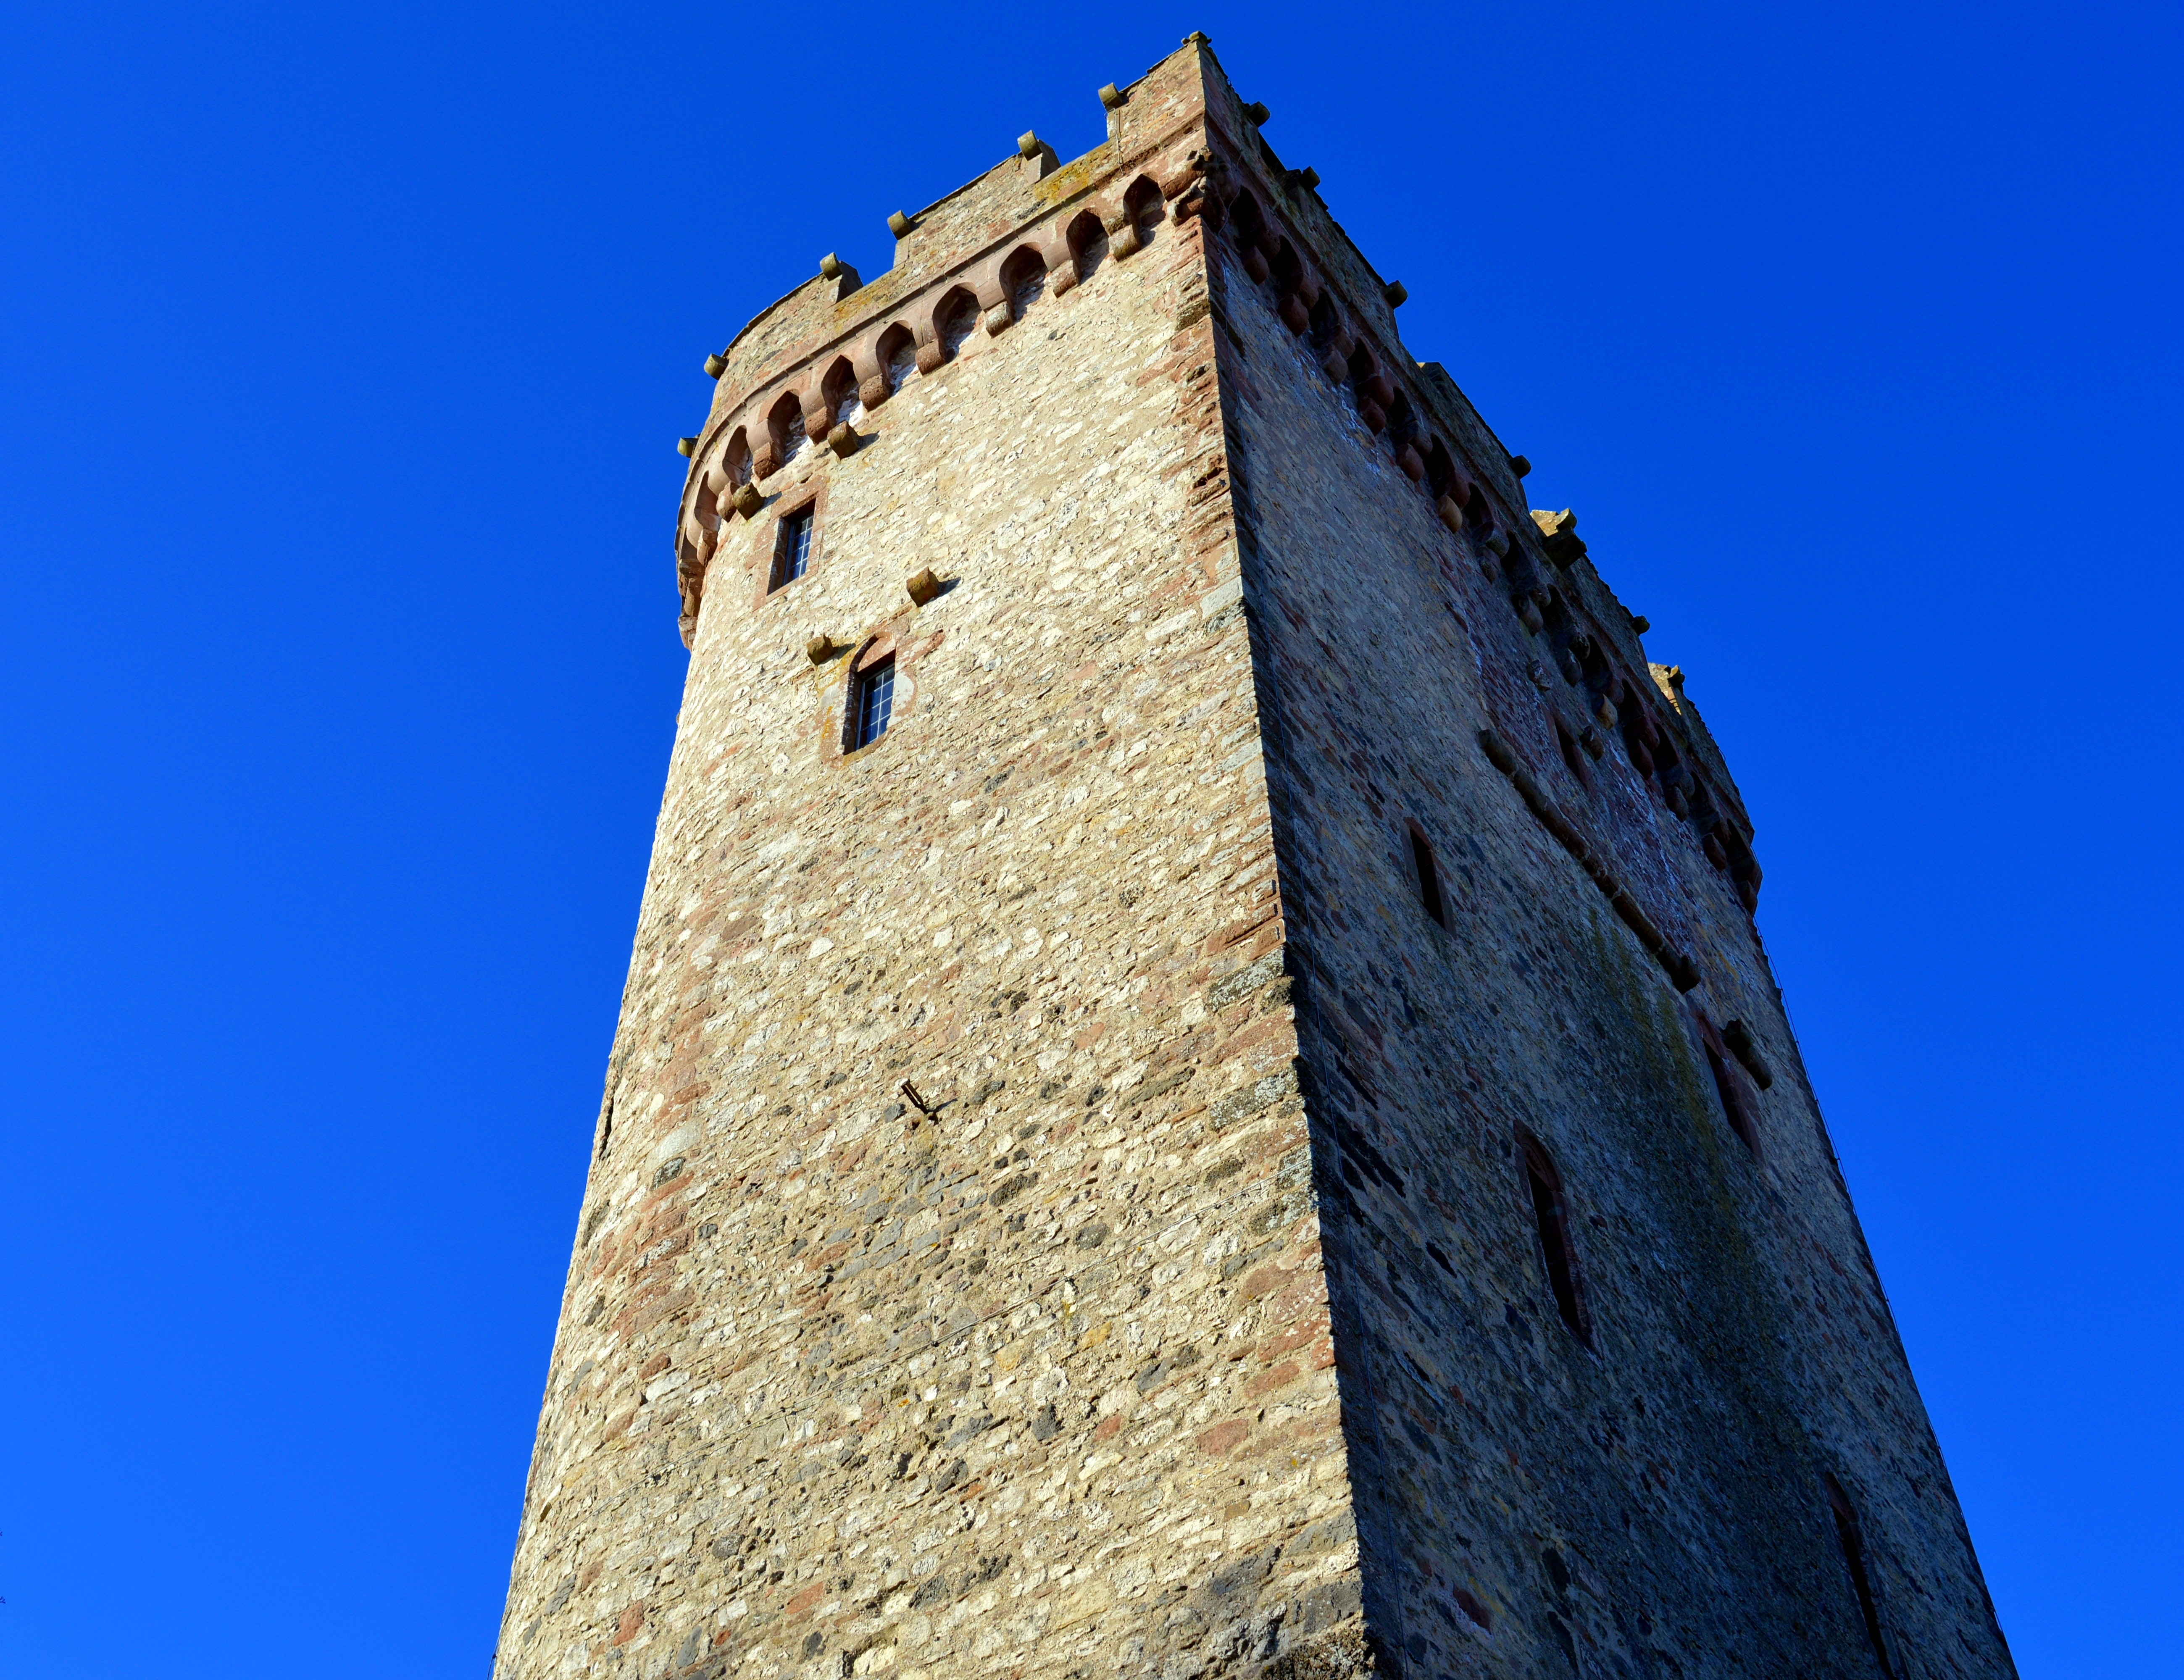 Low Angle View of Tower Against Clear Blue Sky, Ancient, Historically, Tower, Tourism, HQ Photo